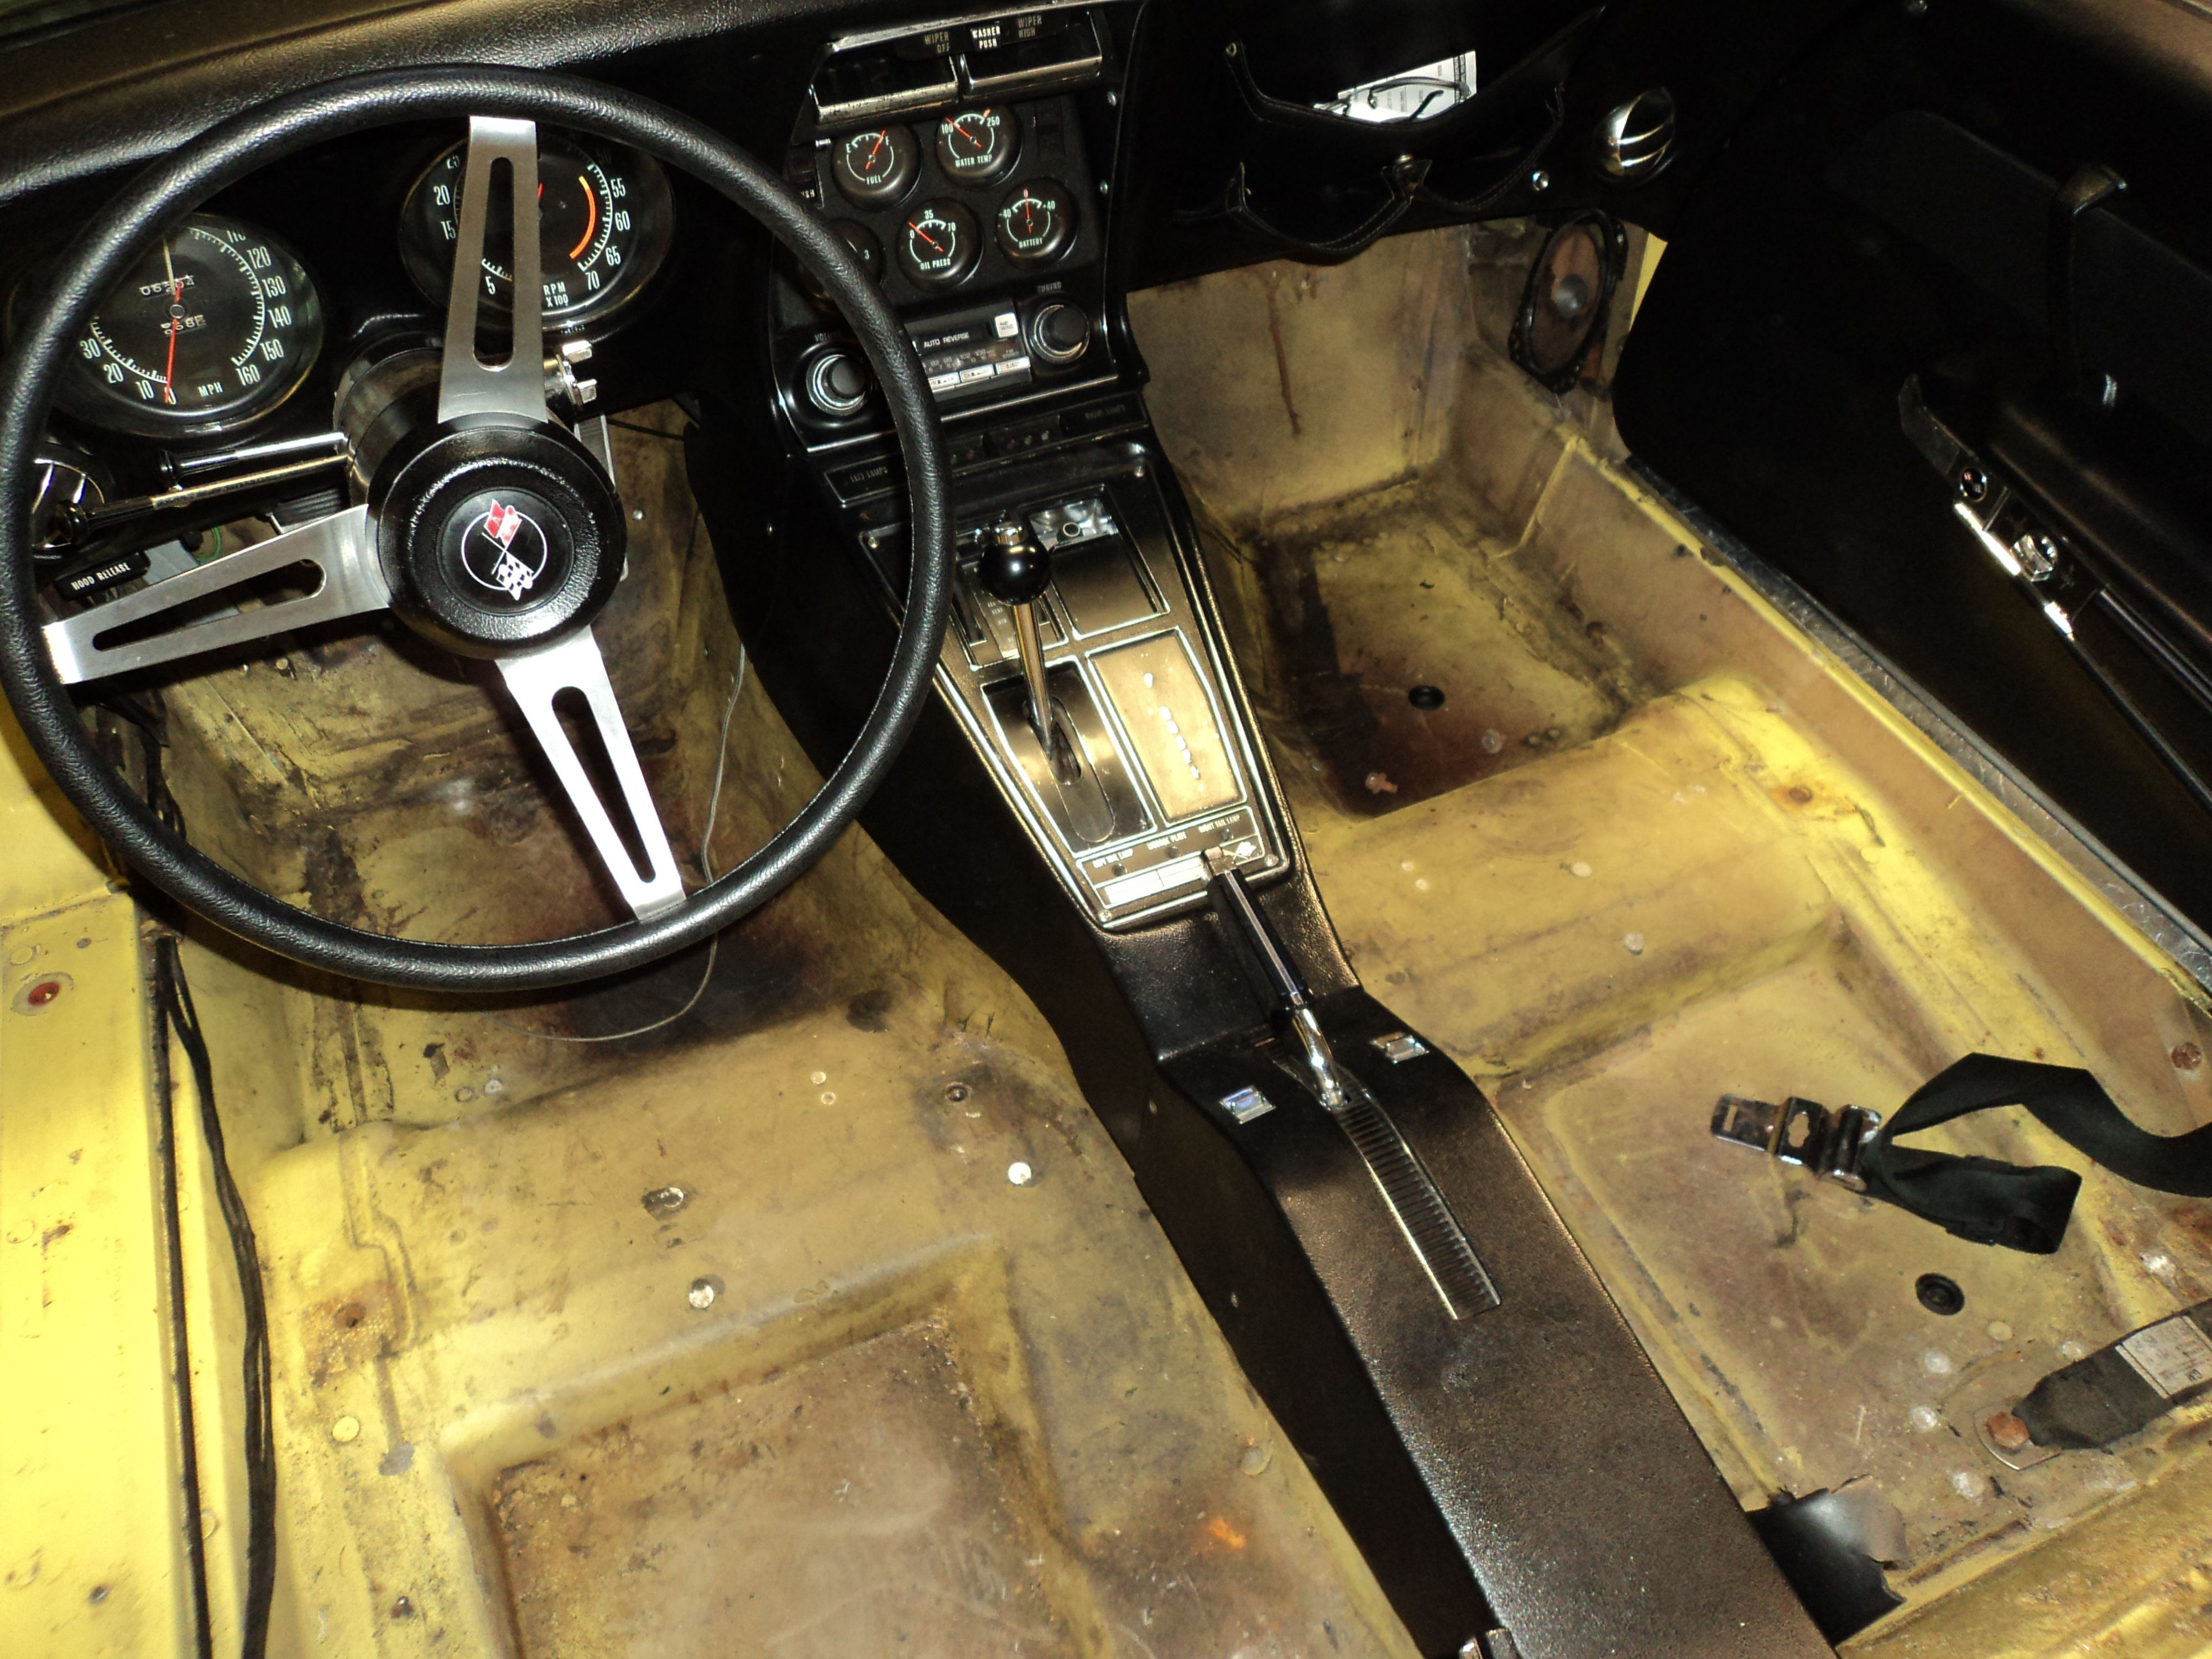 Corvette Carpet Replacement Car Stereo With Complete Installation Dash Kit Wiring Harness Ebay Heres The Floor Of No Installed Its A Good Idea To Wash Pine Sol Or Natures Miracle Remove Odors And Mold